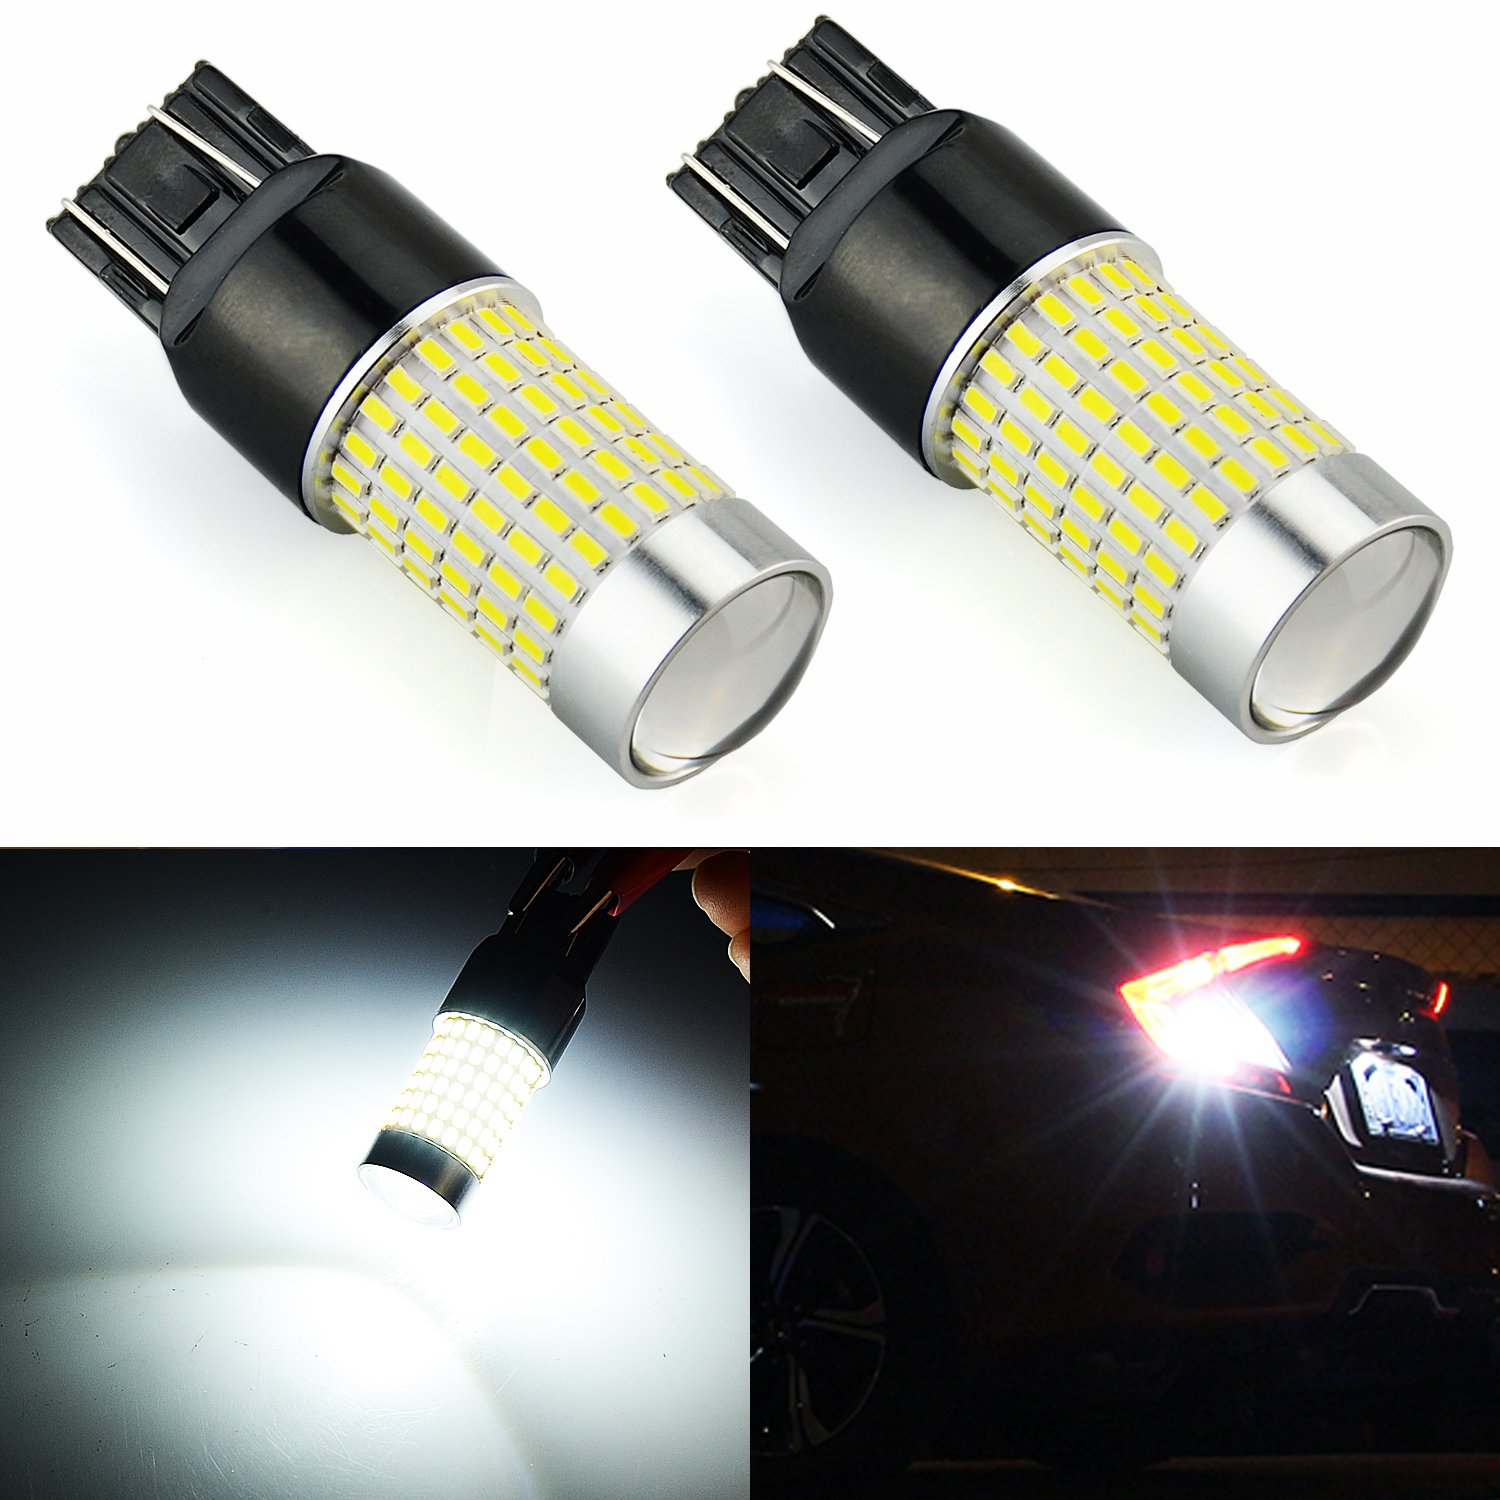 Brake Lights Bulbs Automotive Led Lamp Lightings Gt Wholesale Lamps 5mm Leds Jdm Astar 1200 Lumens Extremely Bright 144 Ex Chipsets 7440 7441 7443 7444 992